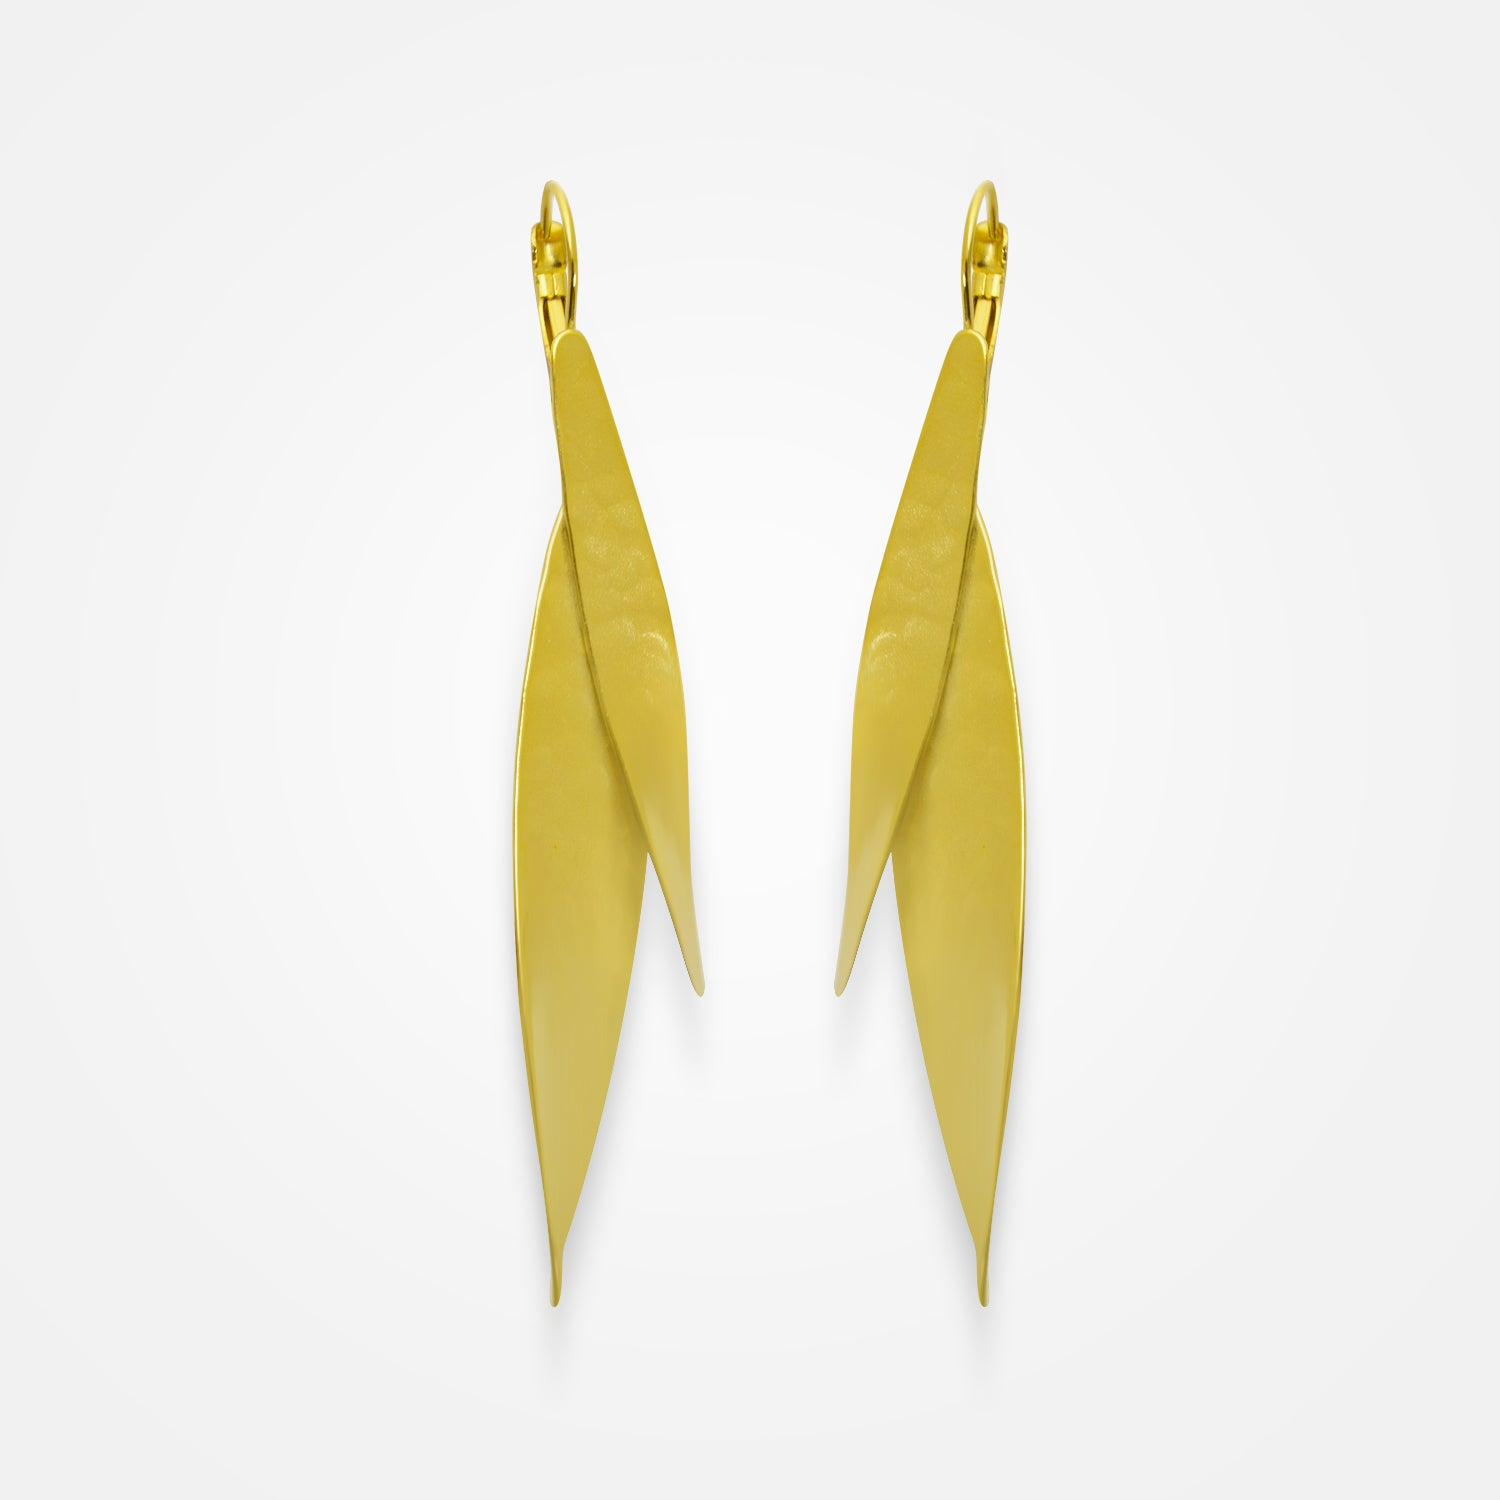 Handcrafted Golden Leaves Earrings by FO.BE